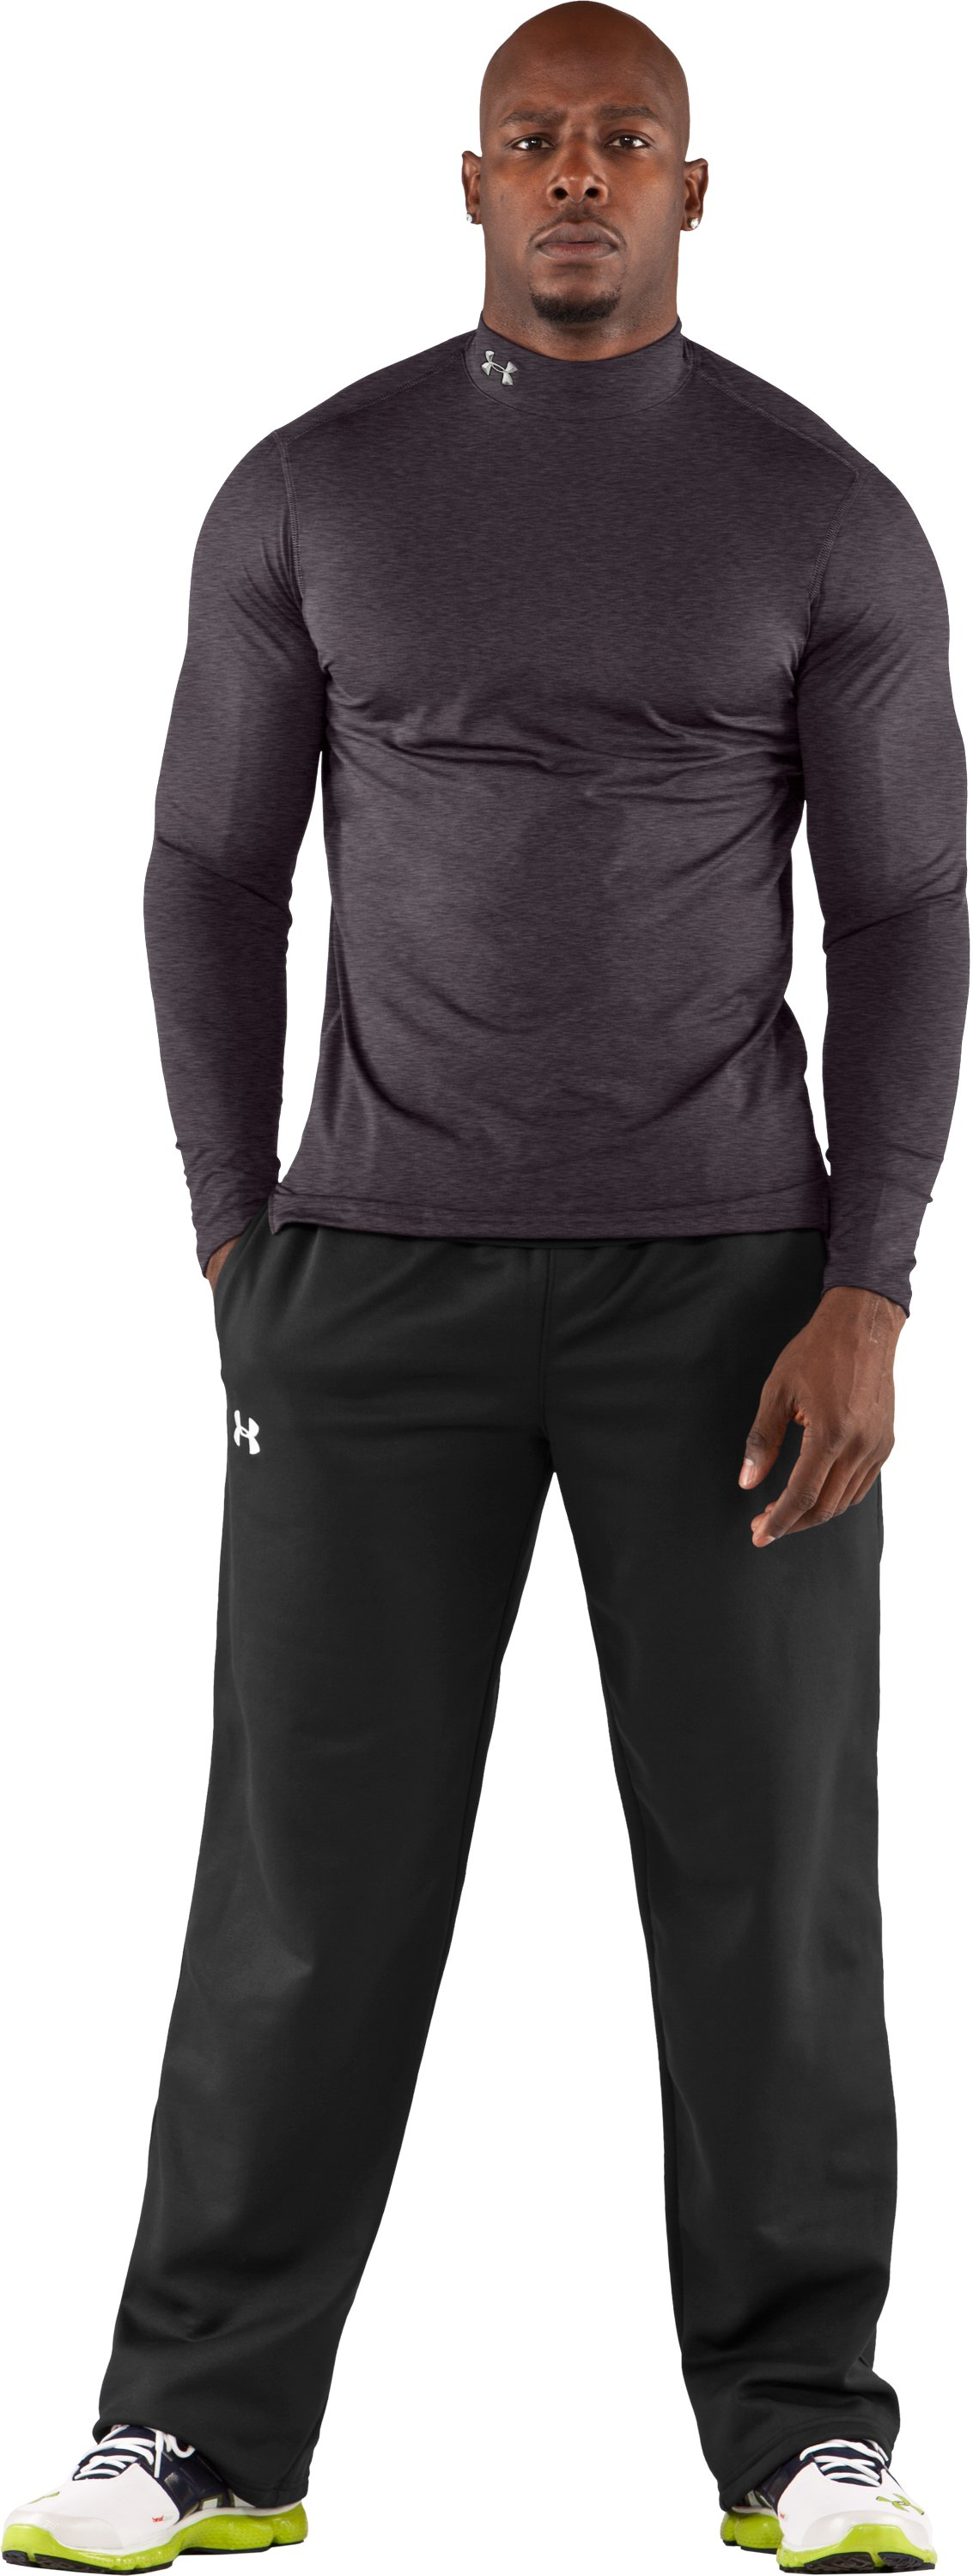 Men's ColdGear® Fitted Long Sleeve Mock, Carbon Heather, Front